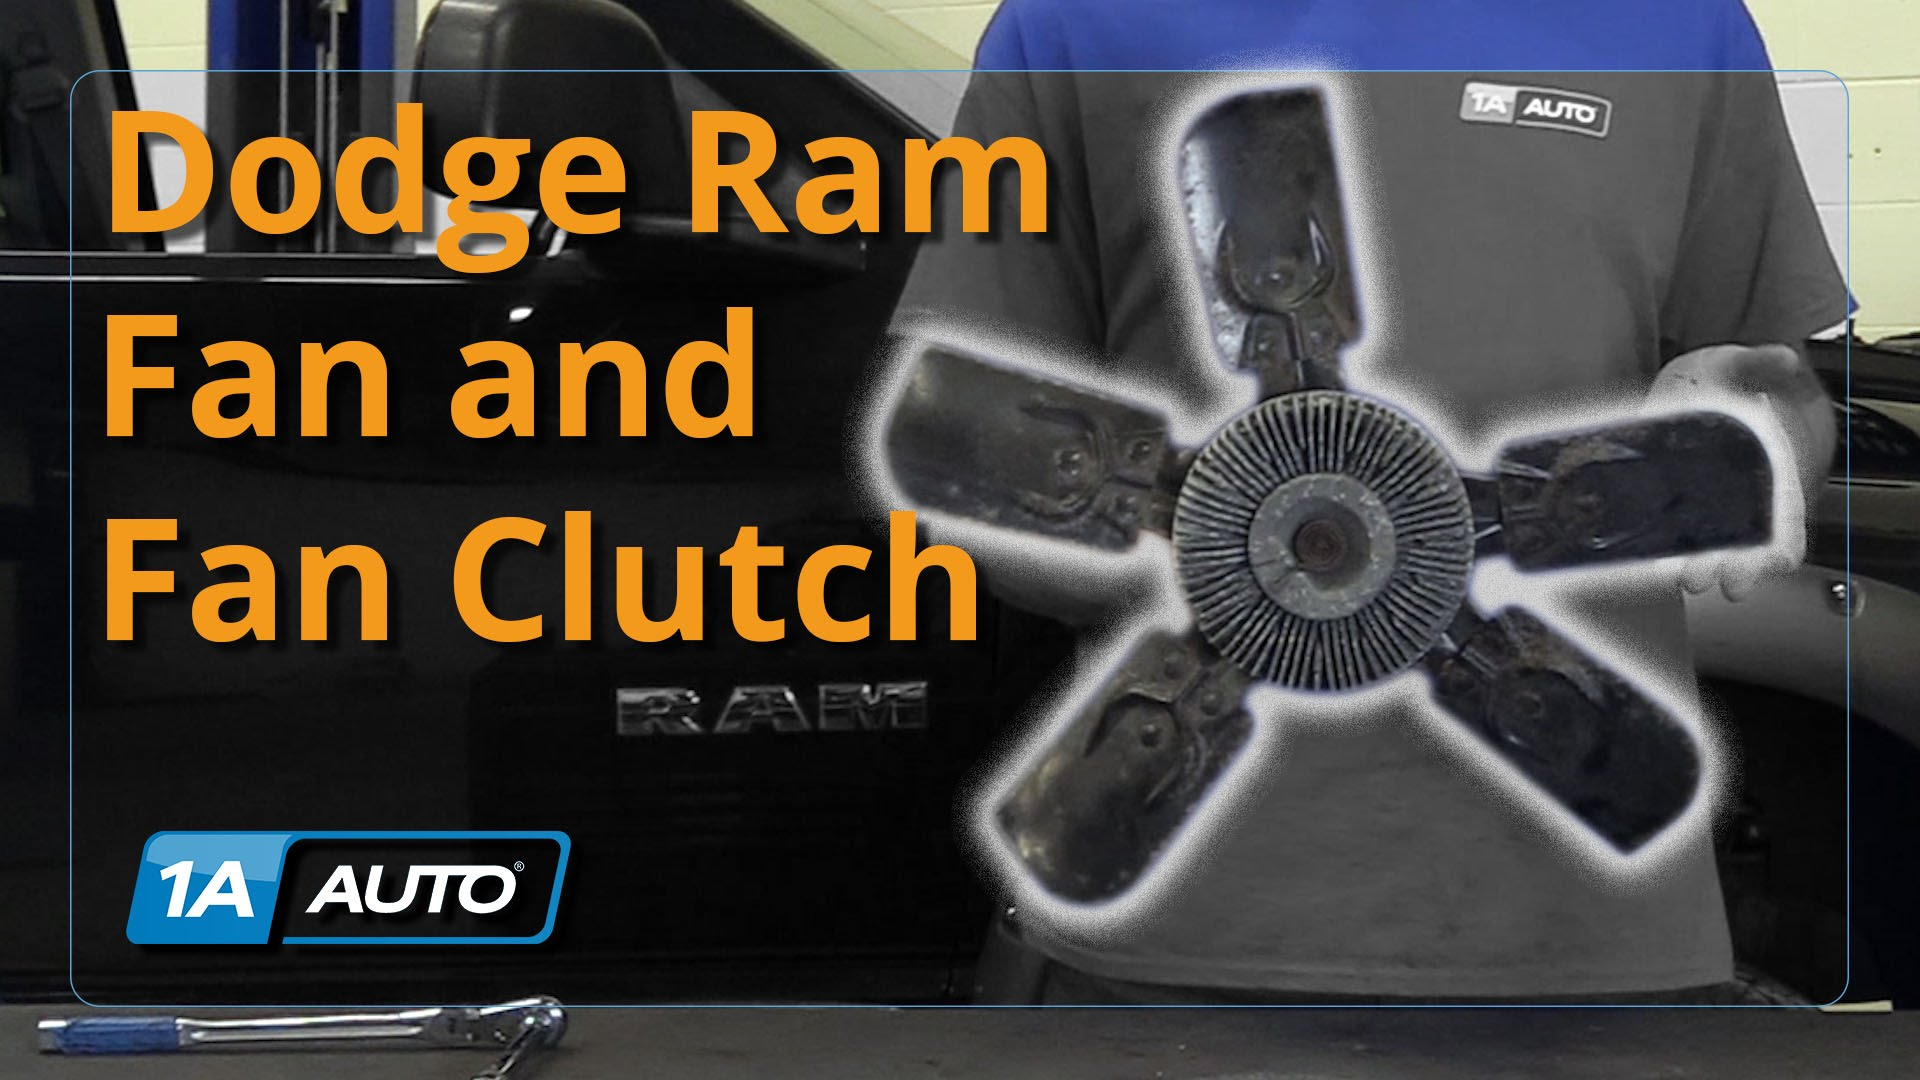 How to Install Replace Radiator Fan and Fan Clutch 08 Dodge Ram BUY QUALITY AUTO PARTS AT 1AAUTO.COM